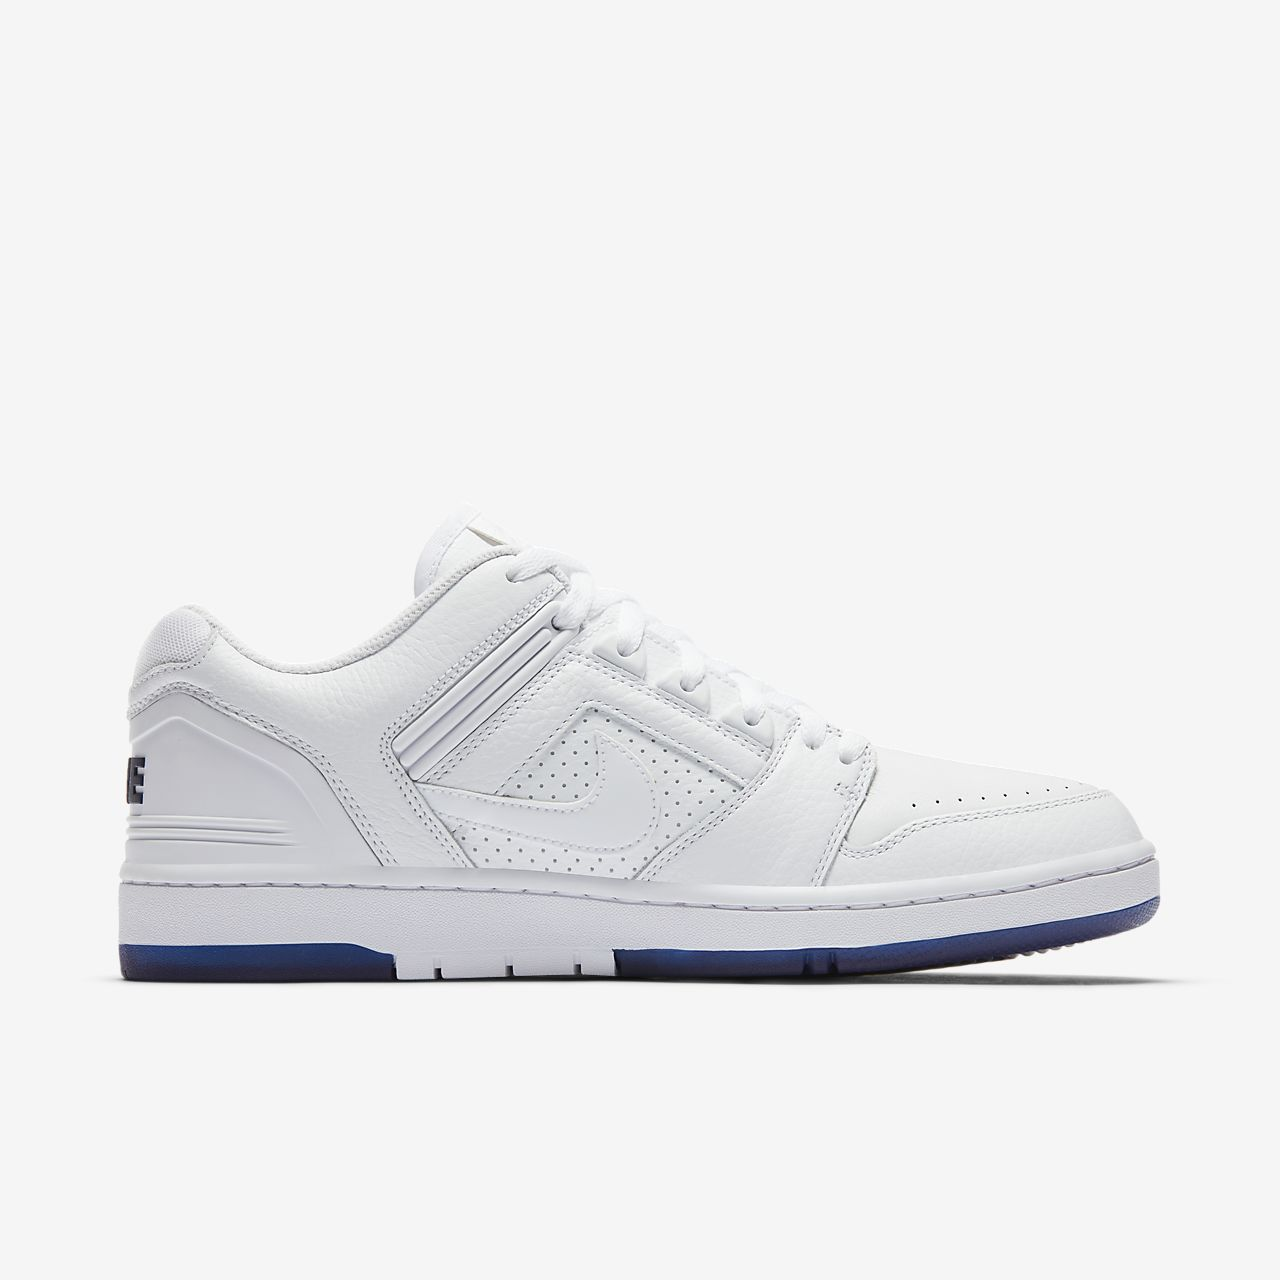 ... Nike SB Air Force II Low Men's Skateboarding Shoe